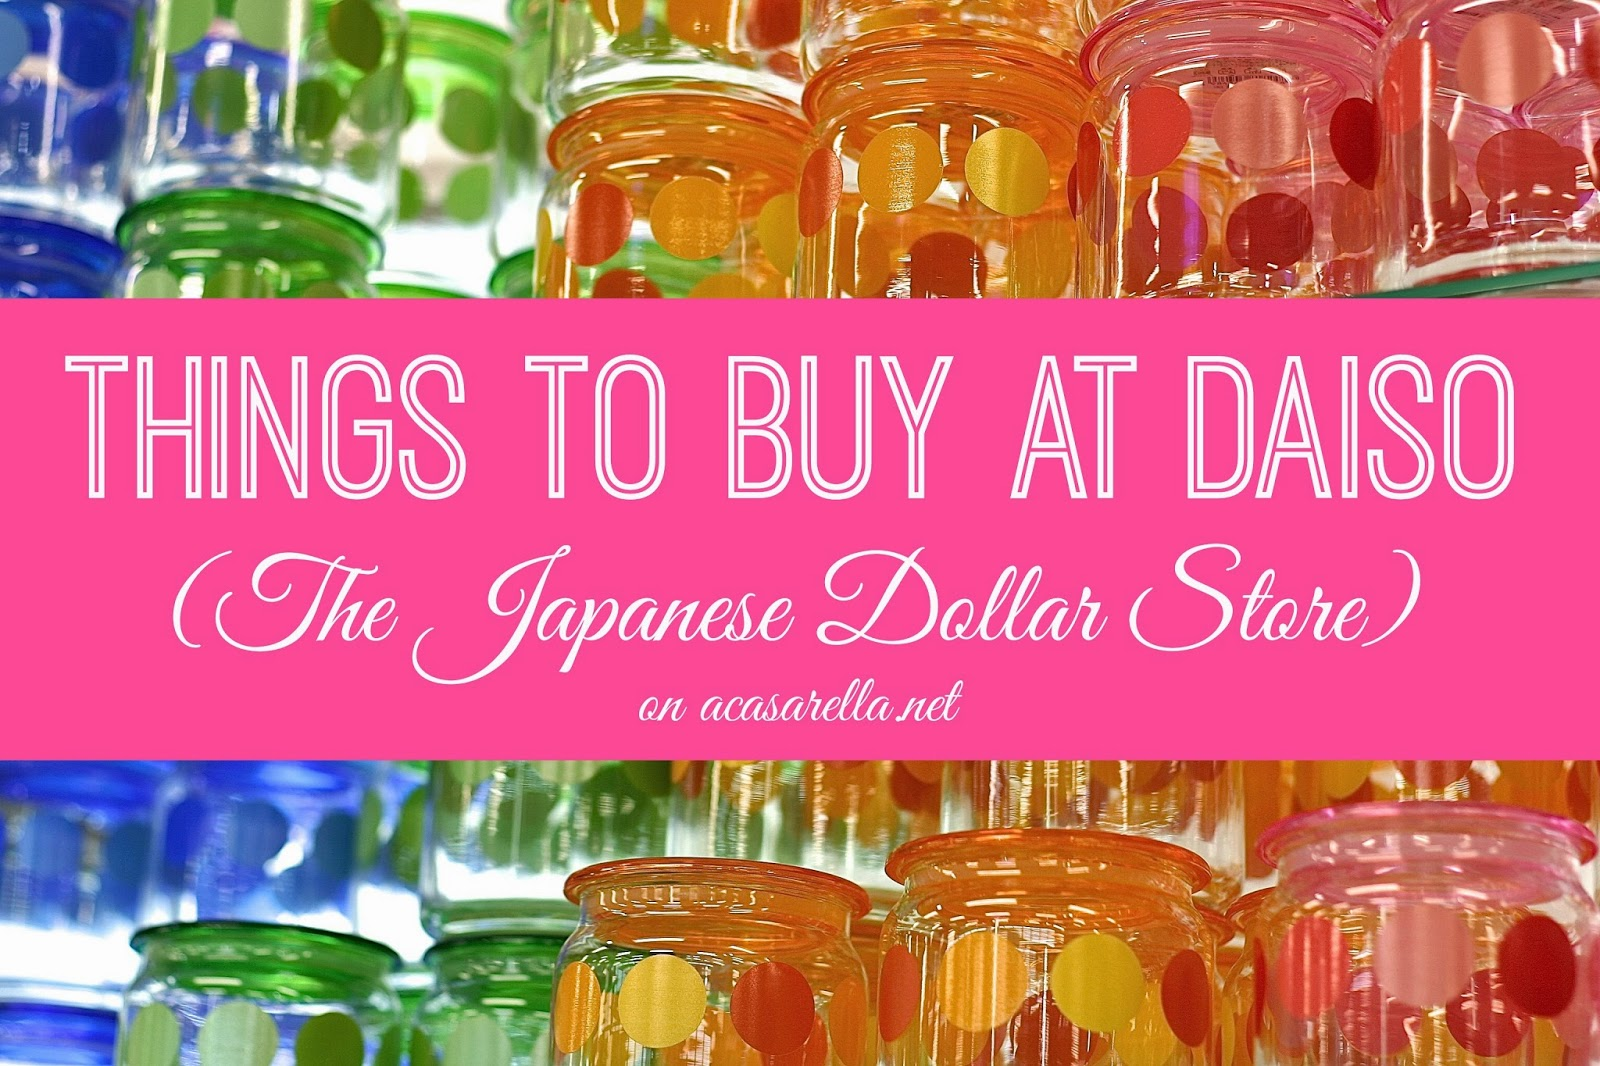 A Visit To Daiso The Quot Japanese Dollar Store Quot A Casarella